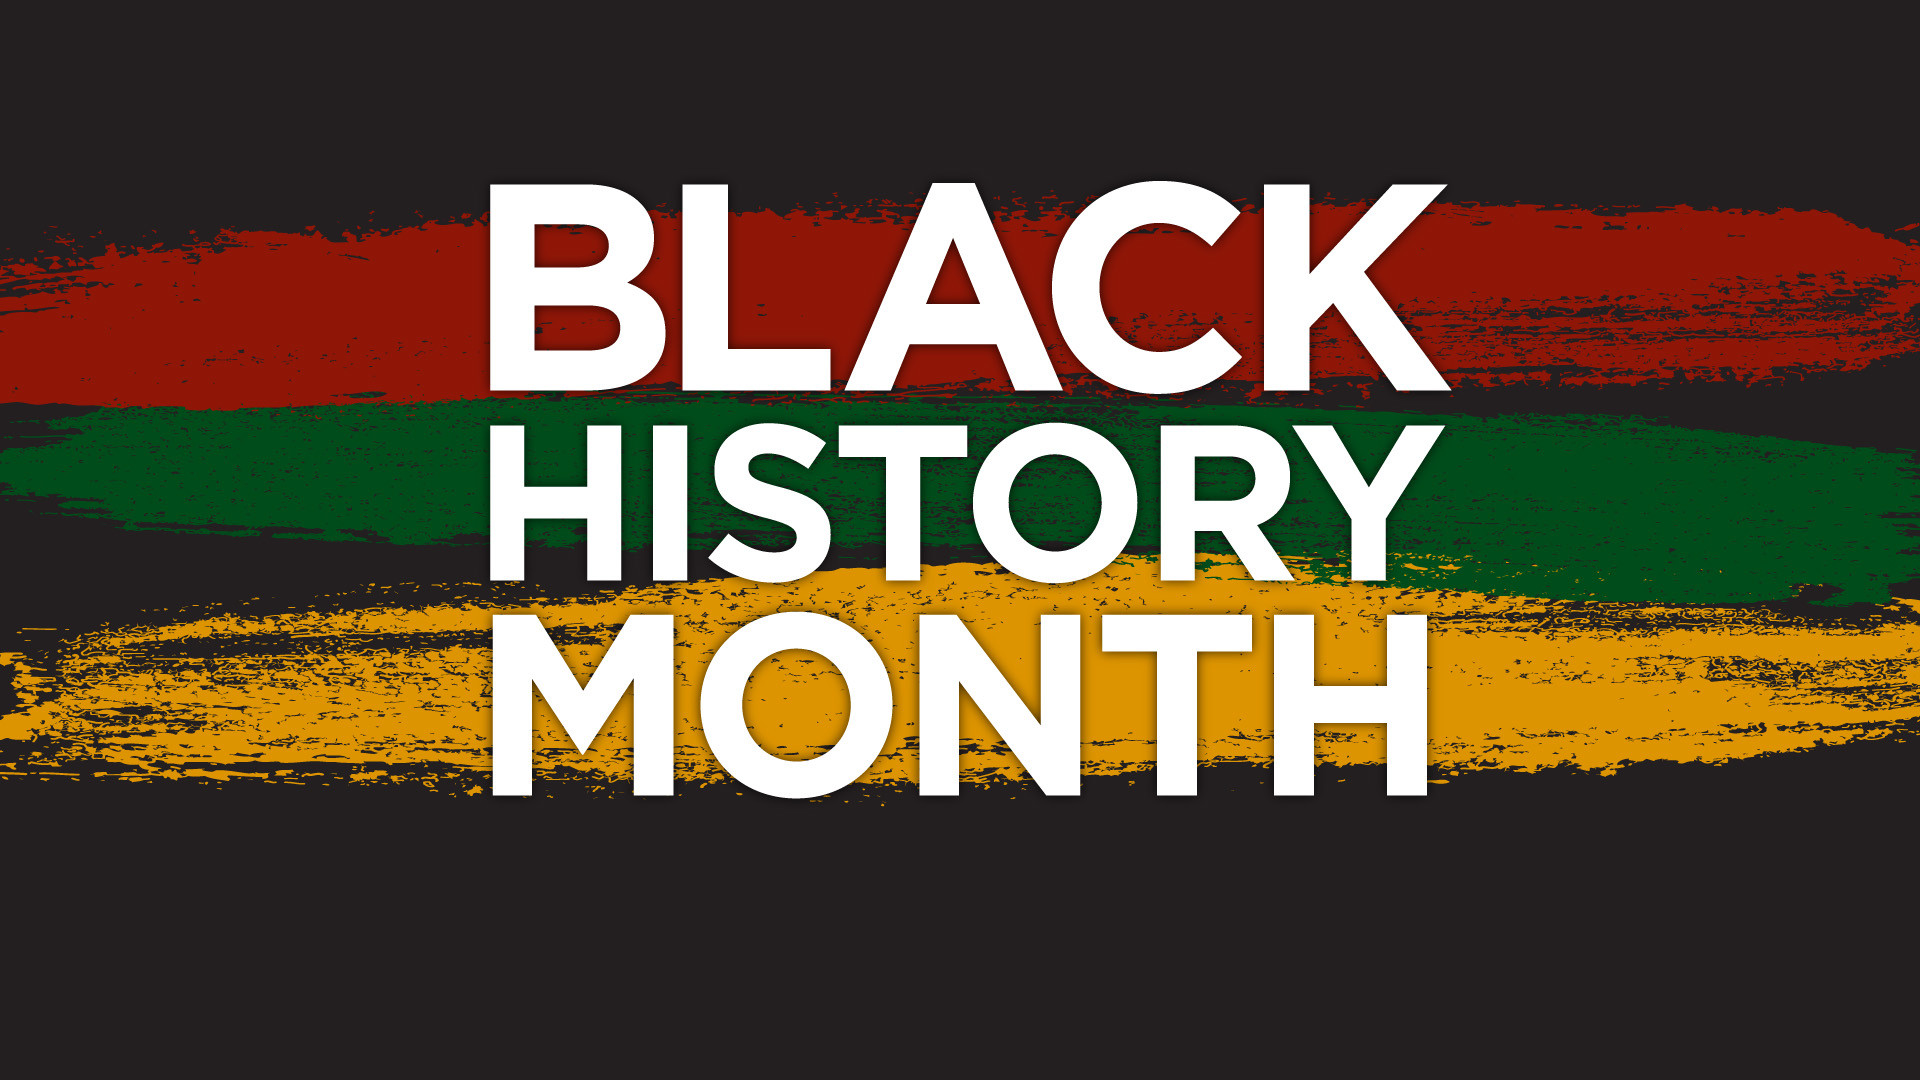 Black History Month Wallpaper 72 Images